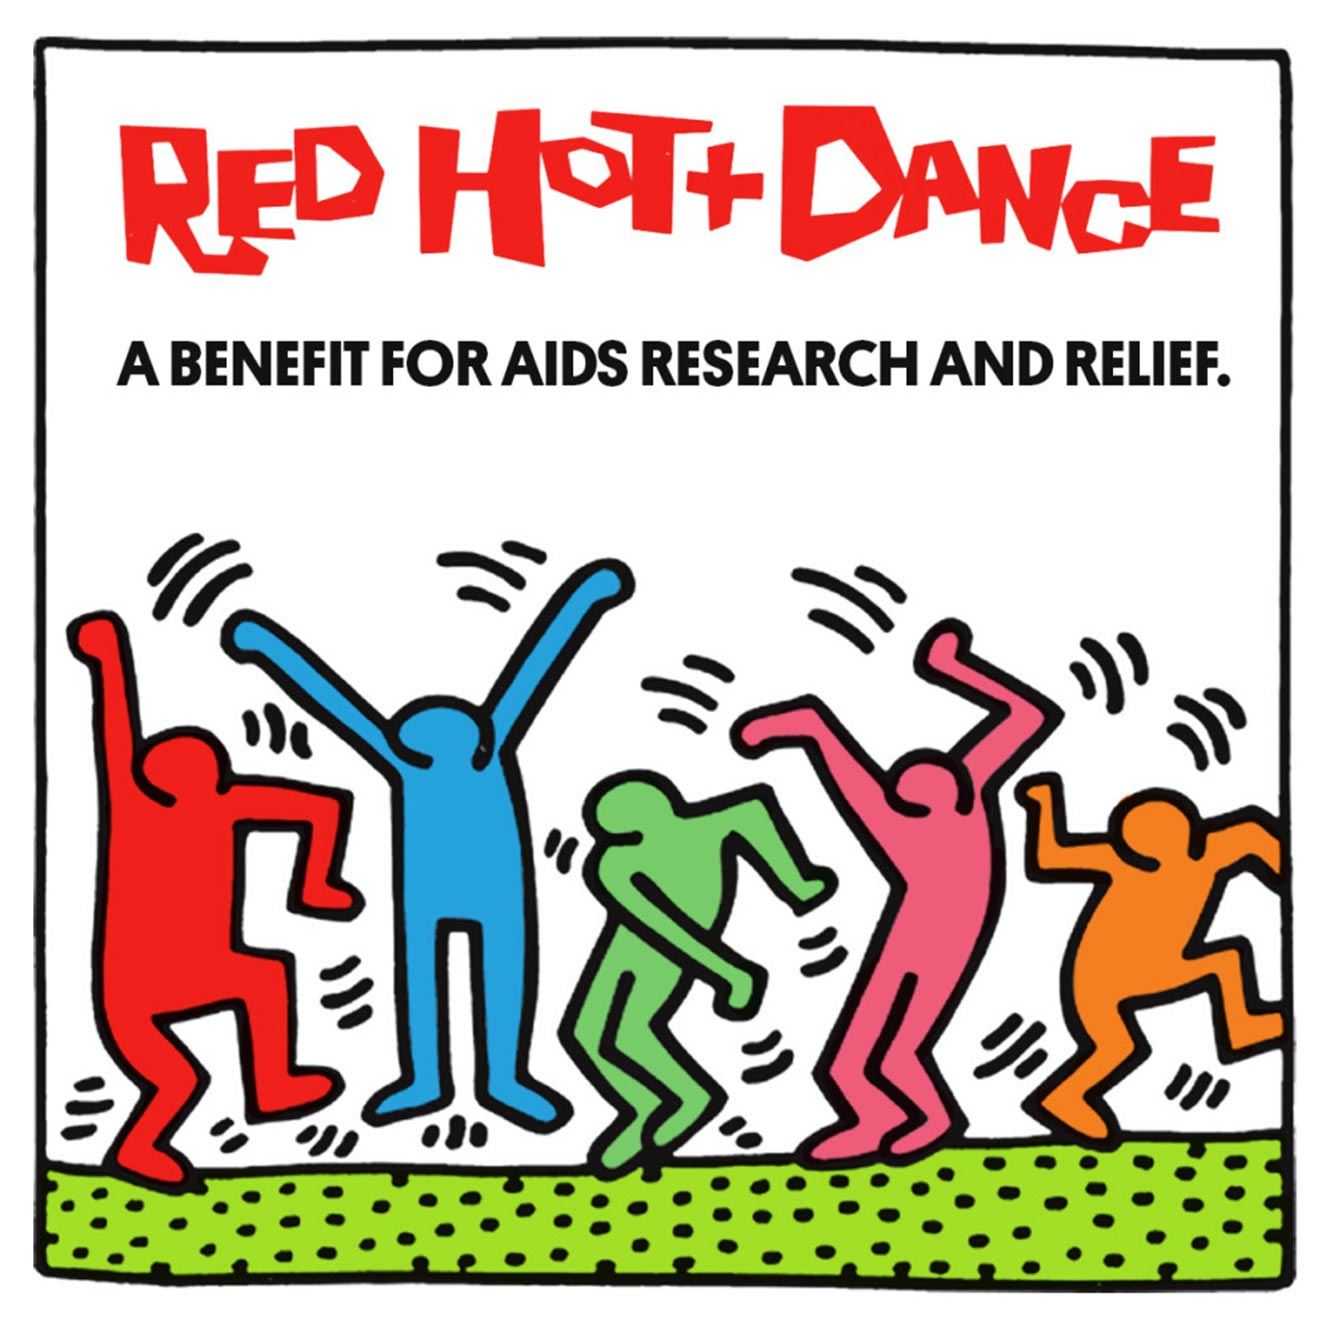 Red Hot and Dance